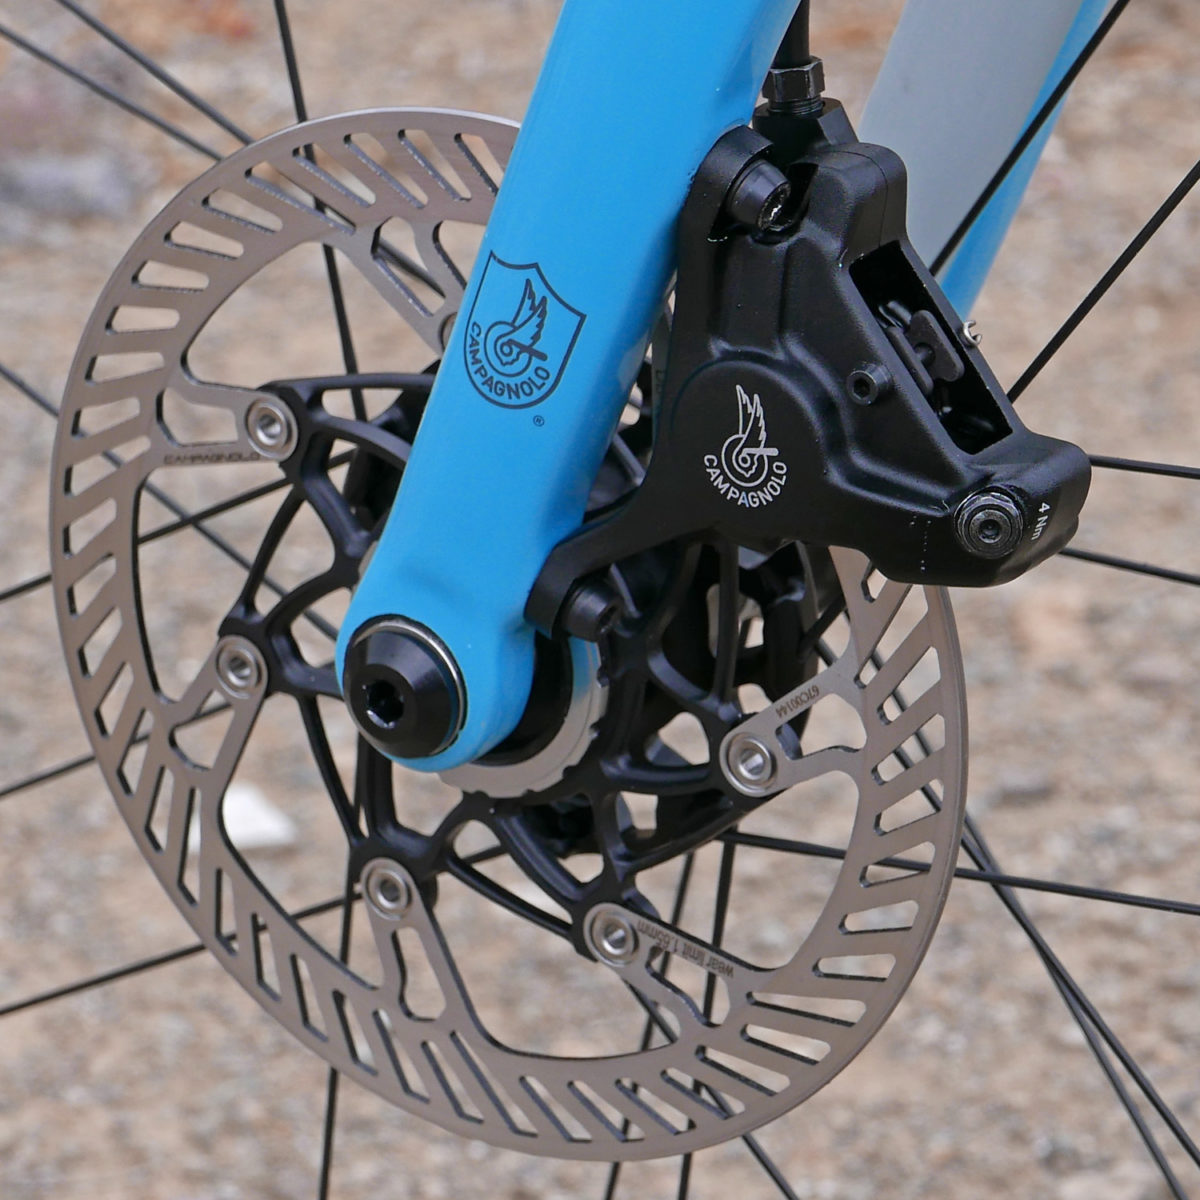 Campagnolo Debuts Hydraulic Disc Brakes All The Way To Affordable Potenza 11 Alloy Groupset